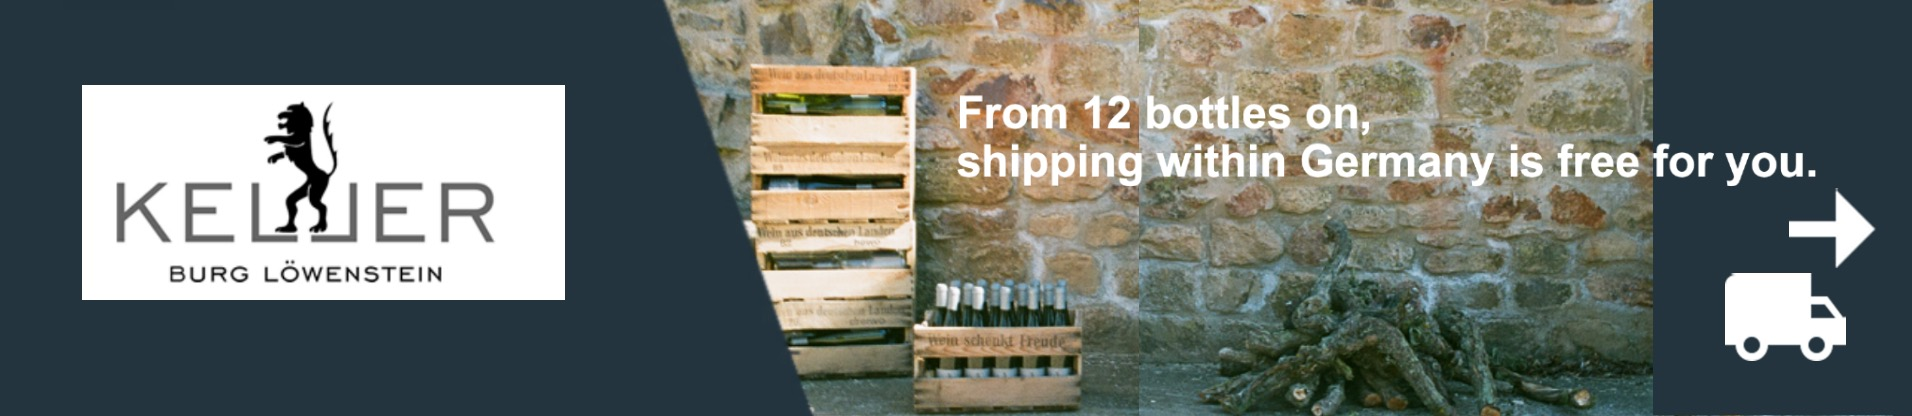 From 12 bottles on, shipping within Germany is free for you.